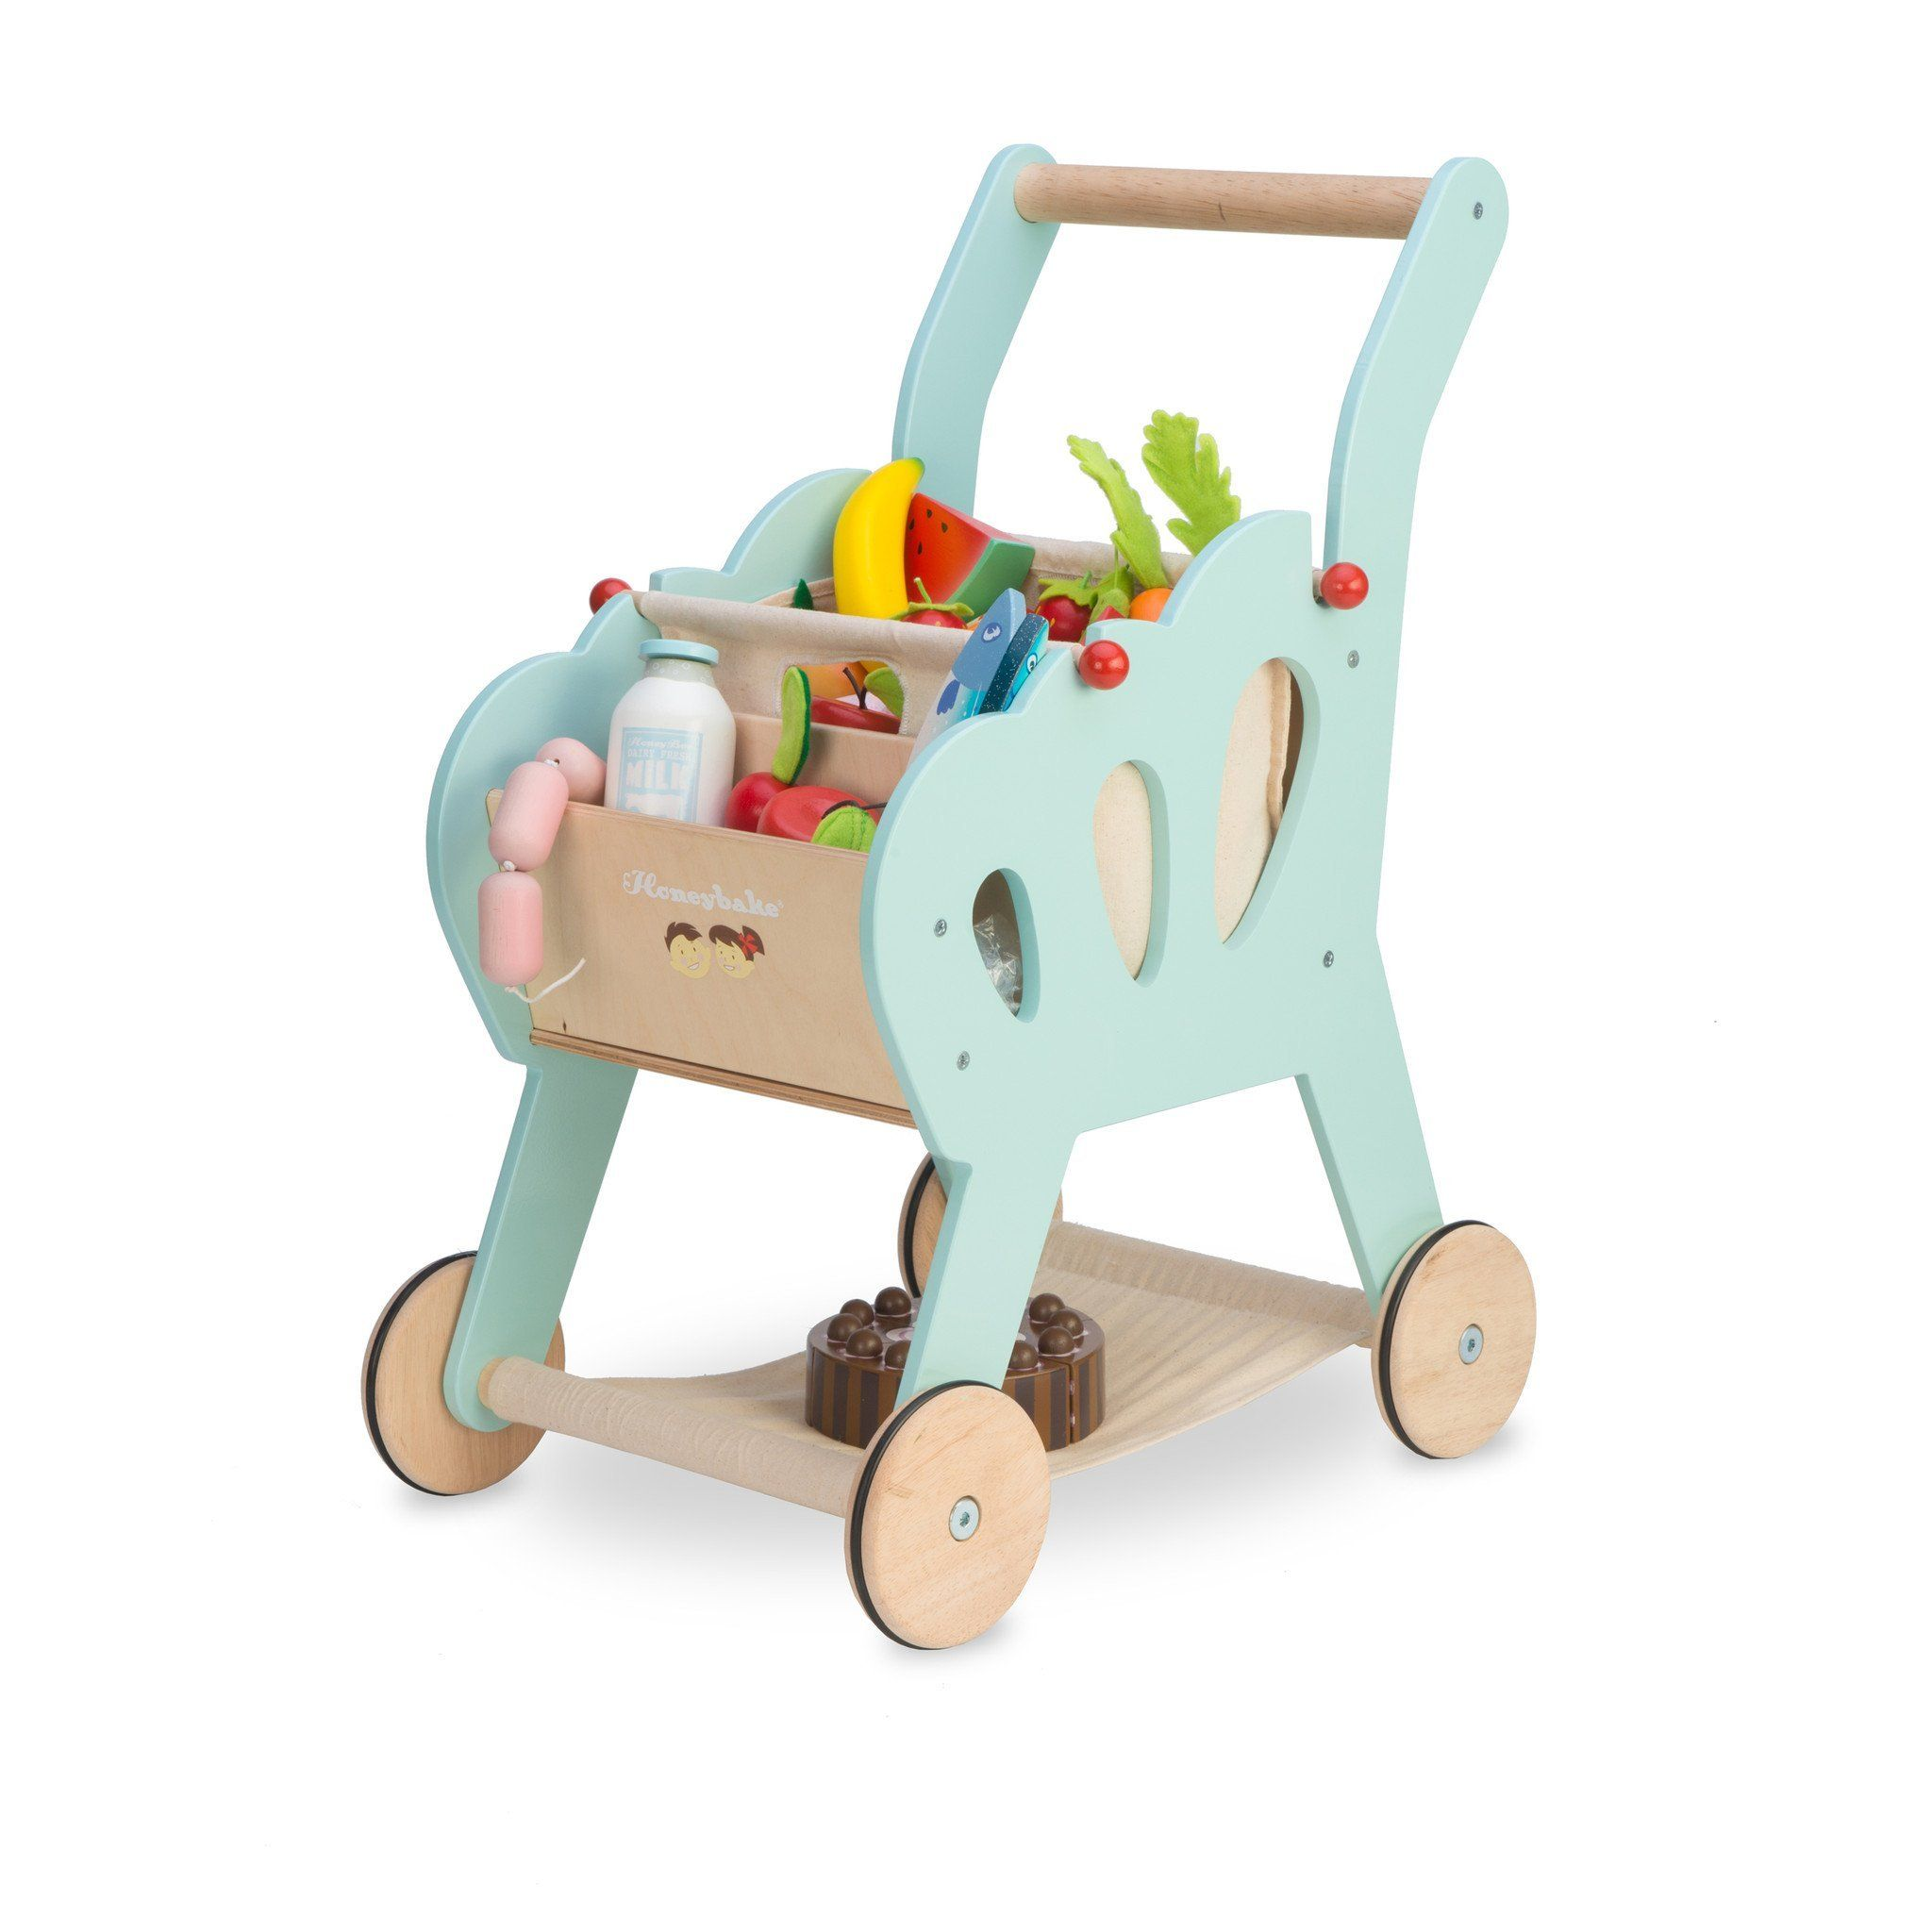 Le Toy Van Shopping Cart Little Earth Nest In 2020 Kids Toy Kitchen Toy Shopping Cart Toddler Toys